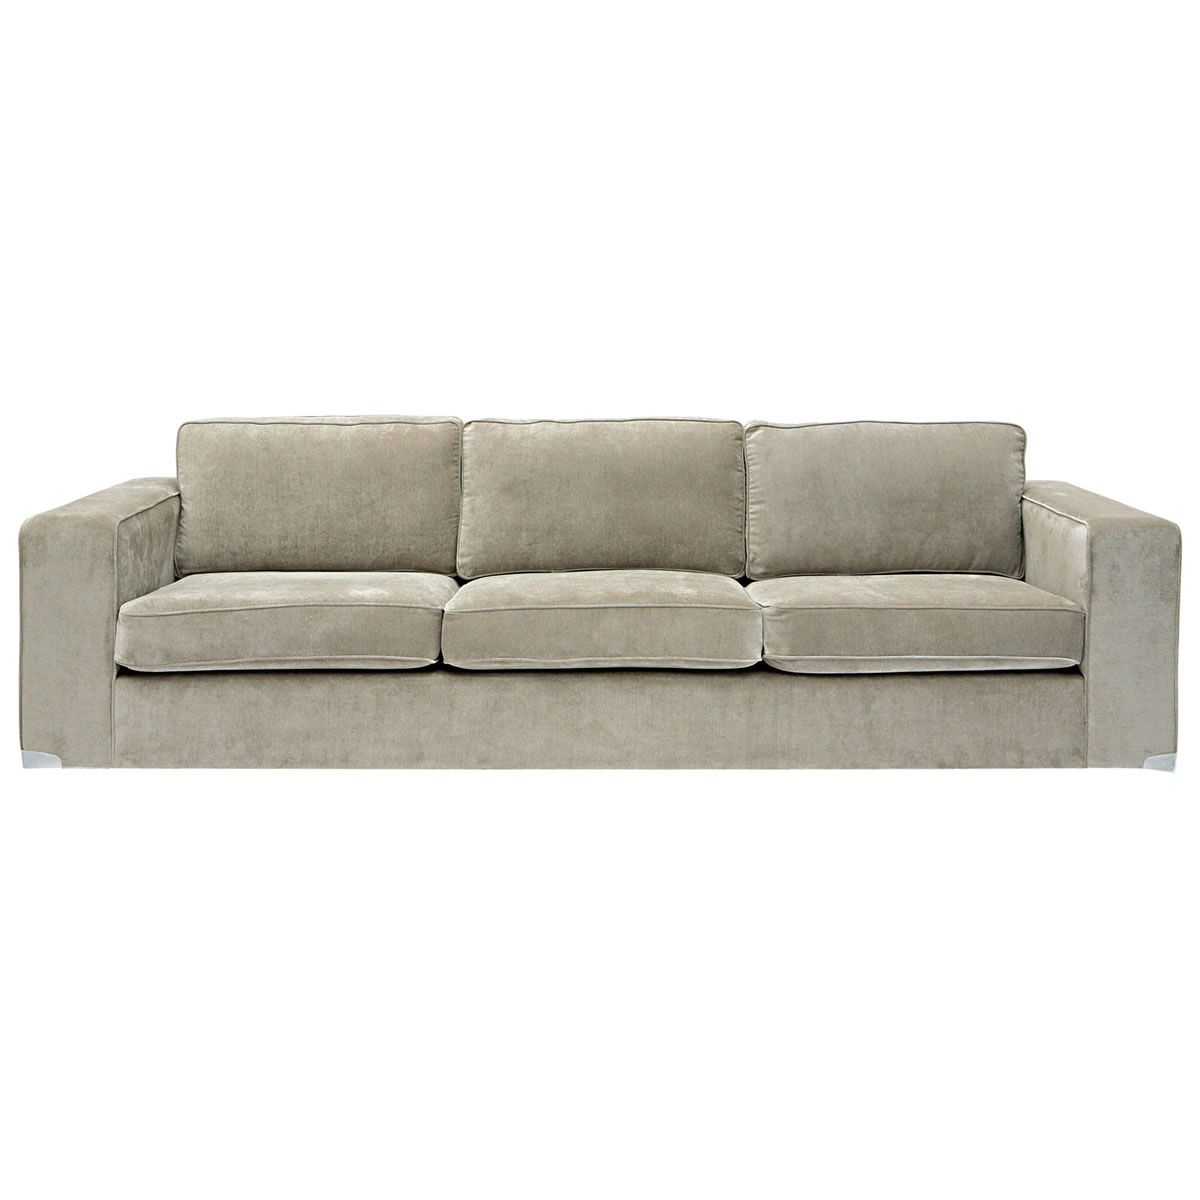 Domayne Furniture Fabric Lounges Carson 3 5 Seater Fabric Sofa From Domayne For The Home